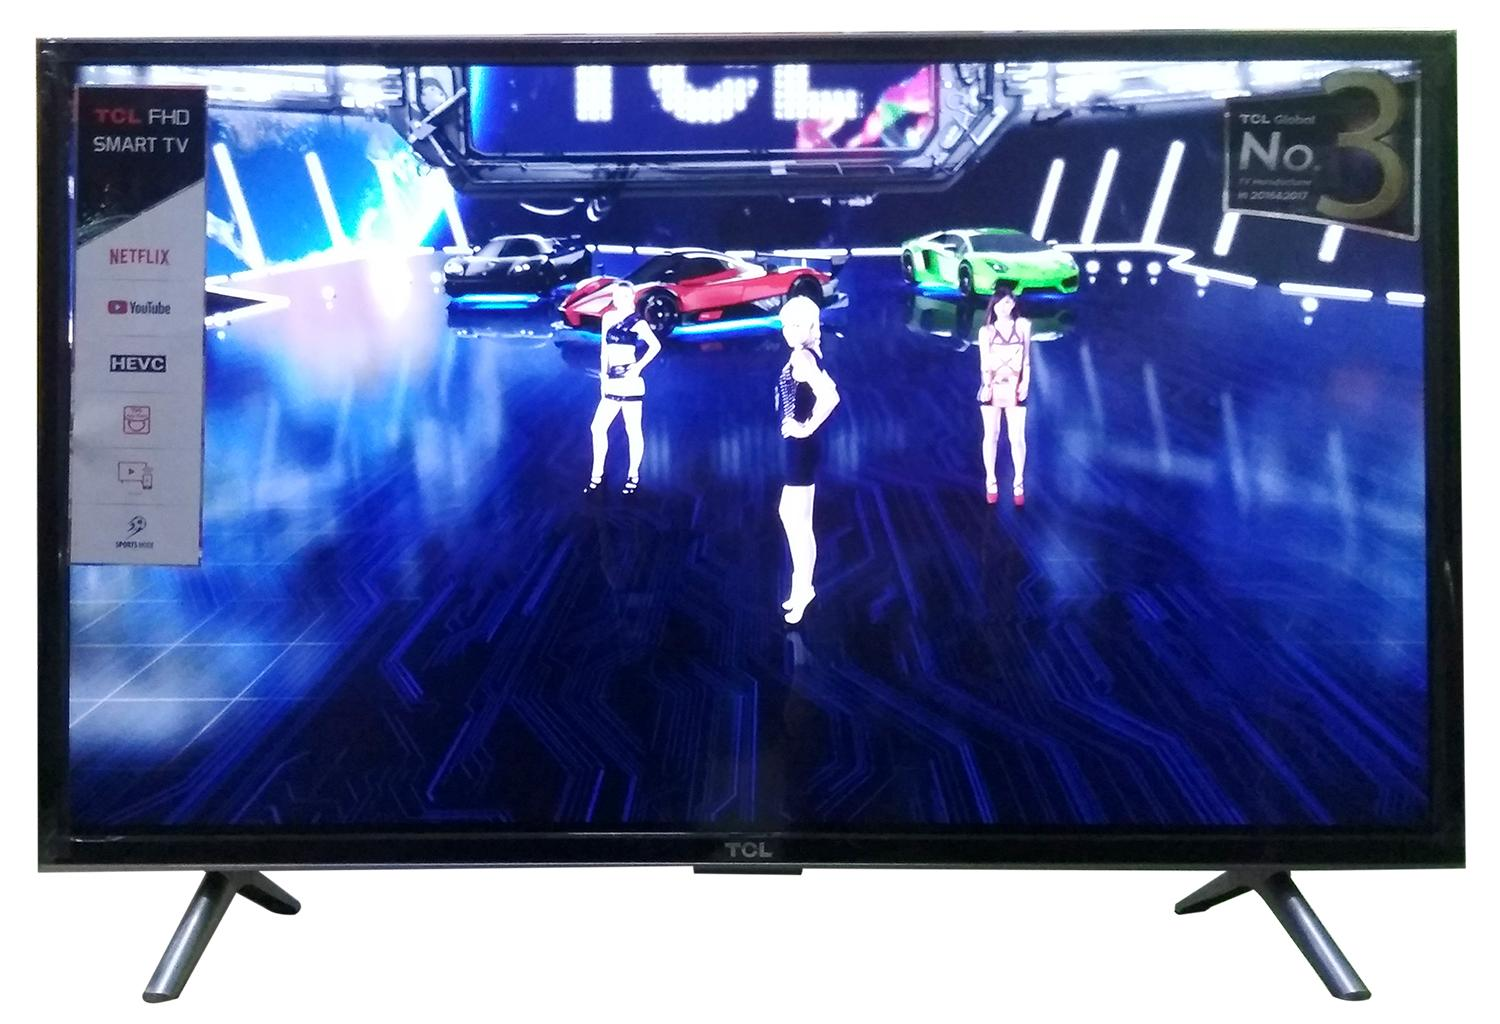 Pink Tv Online Buy Pink Lady Tcl Led Televisions At Best Prices Online In Myanmar